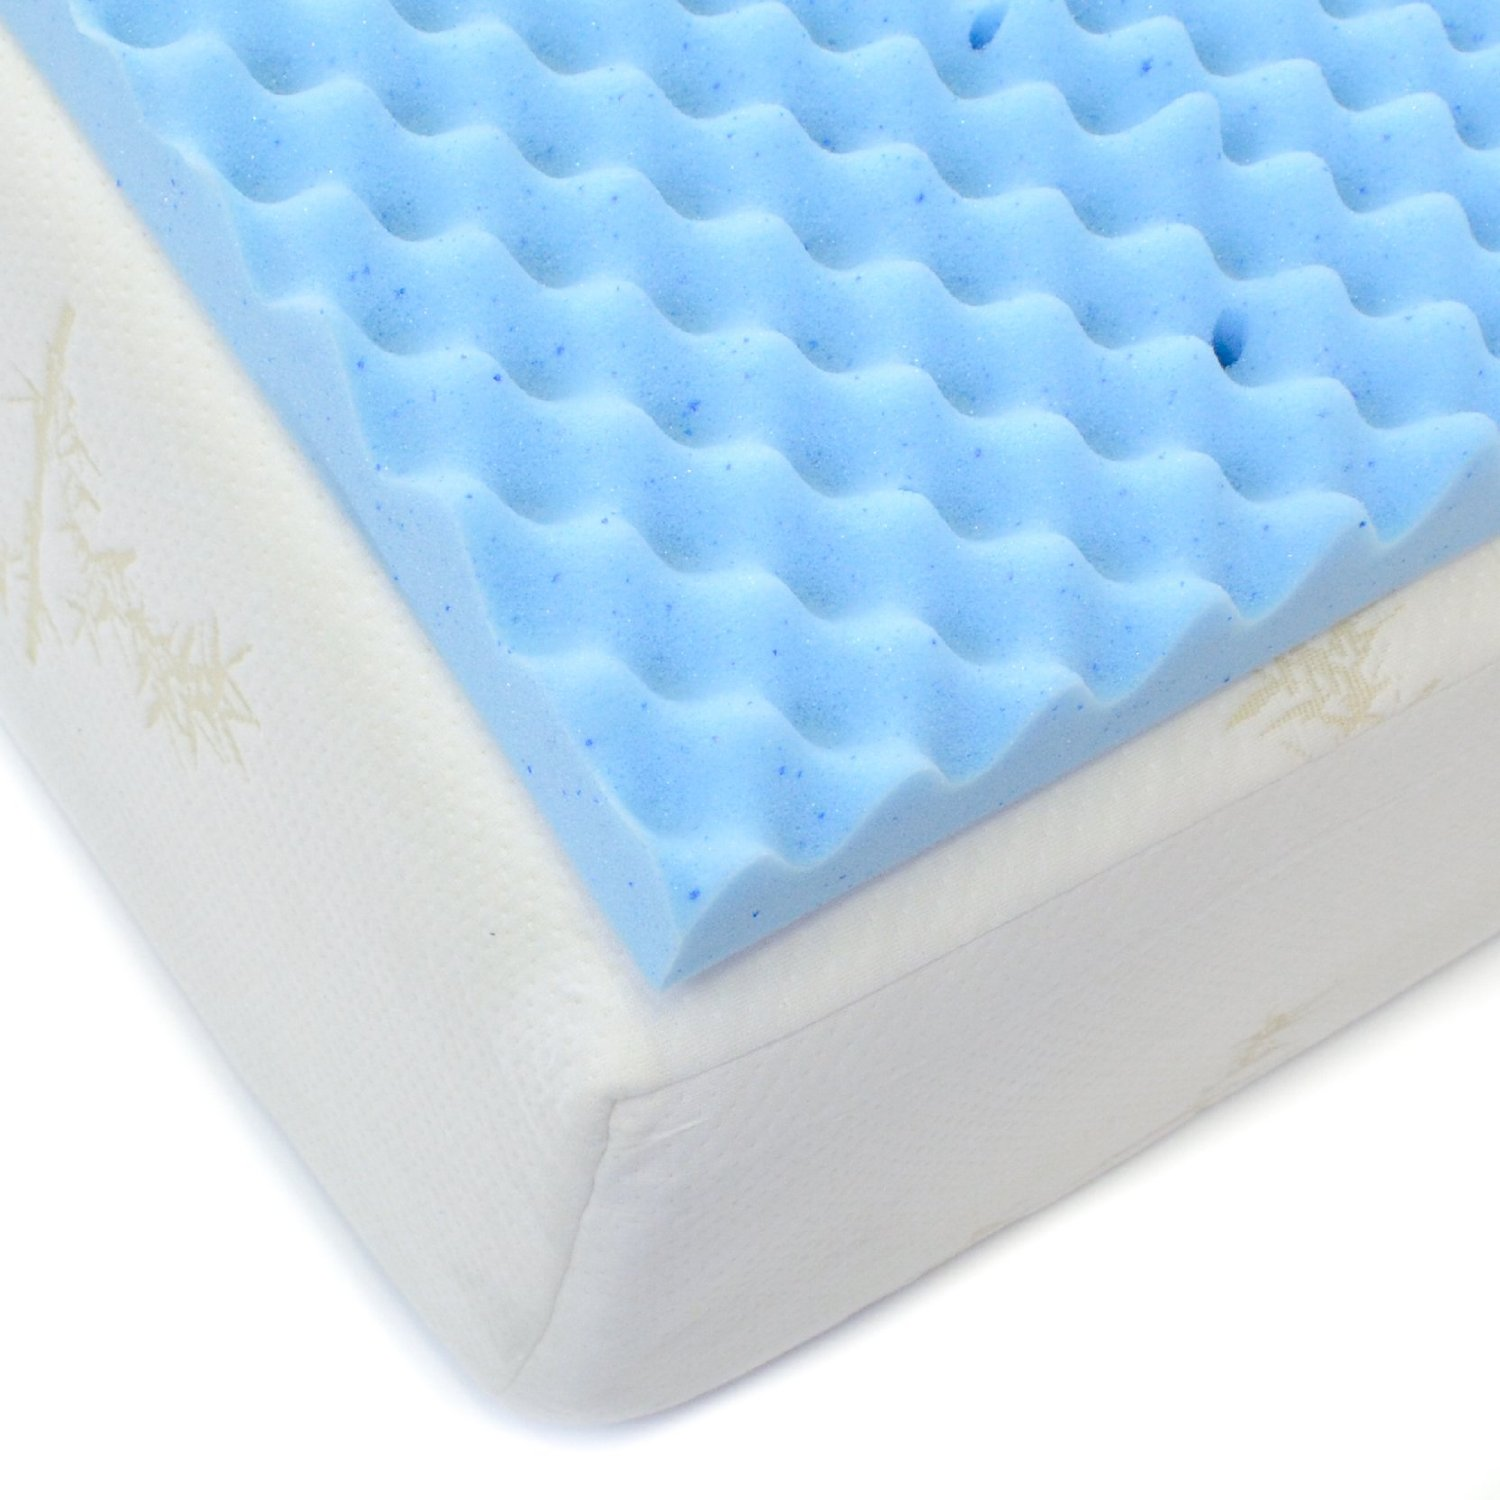 Egg Crate Gel Infused Memory Foam Mattress Topper Full